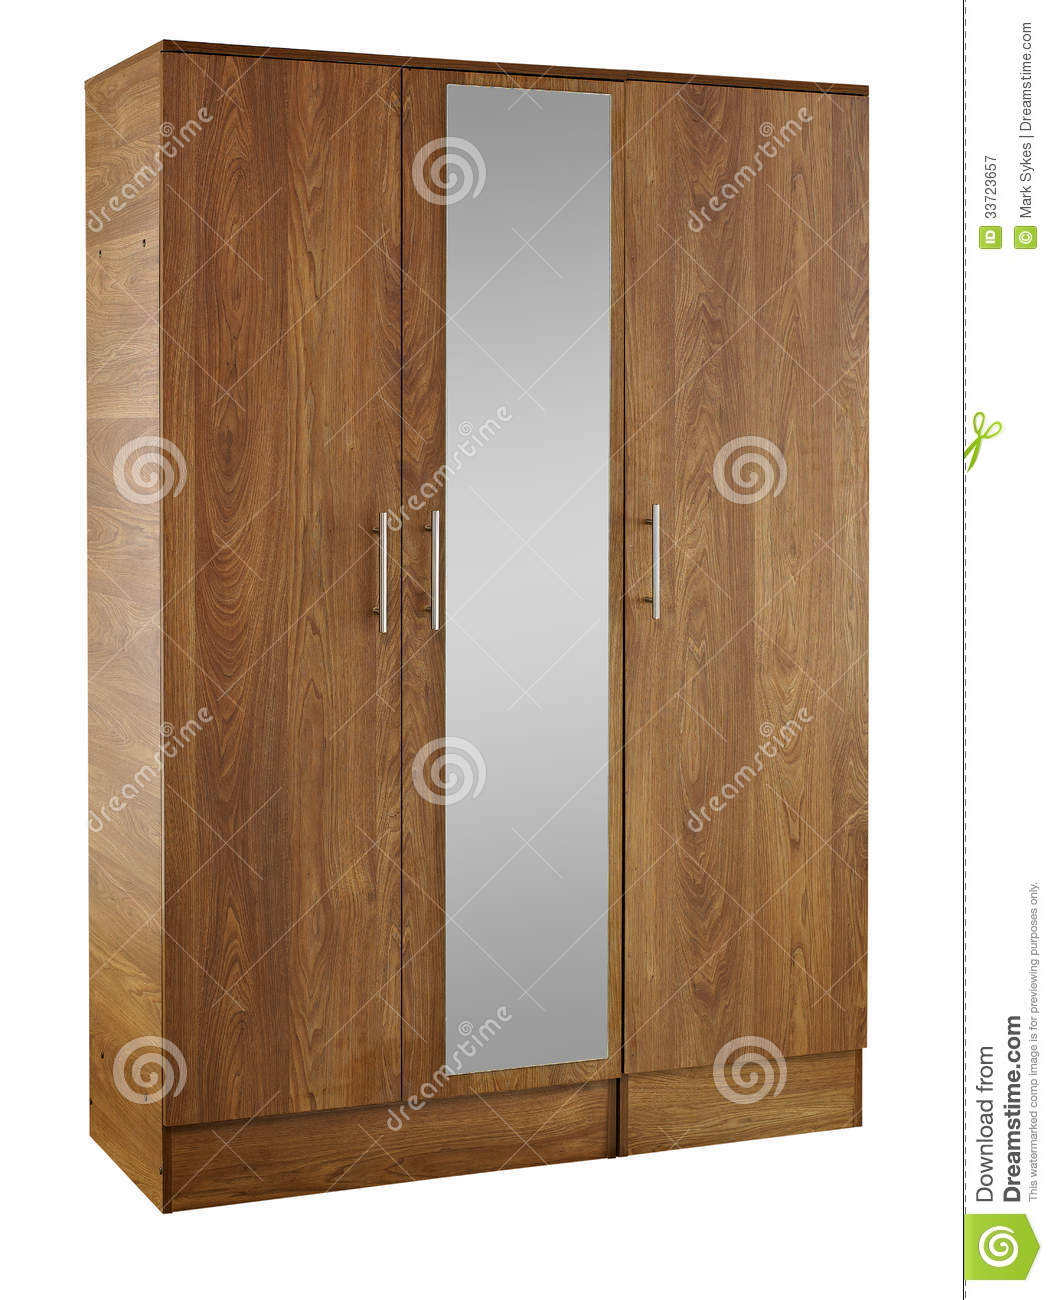 Brown wood wardrobe isolated on white background royalty free stock